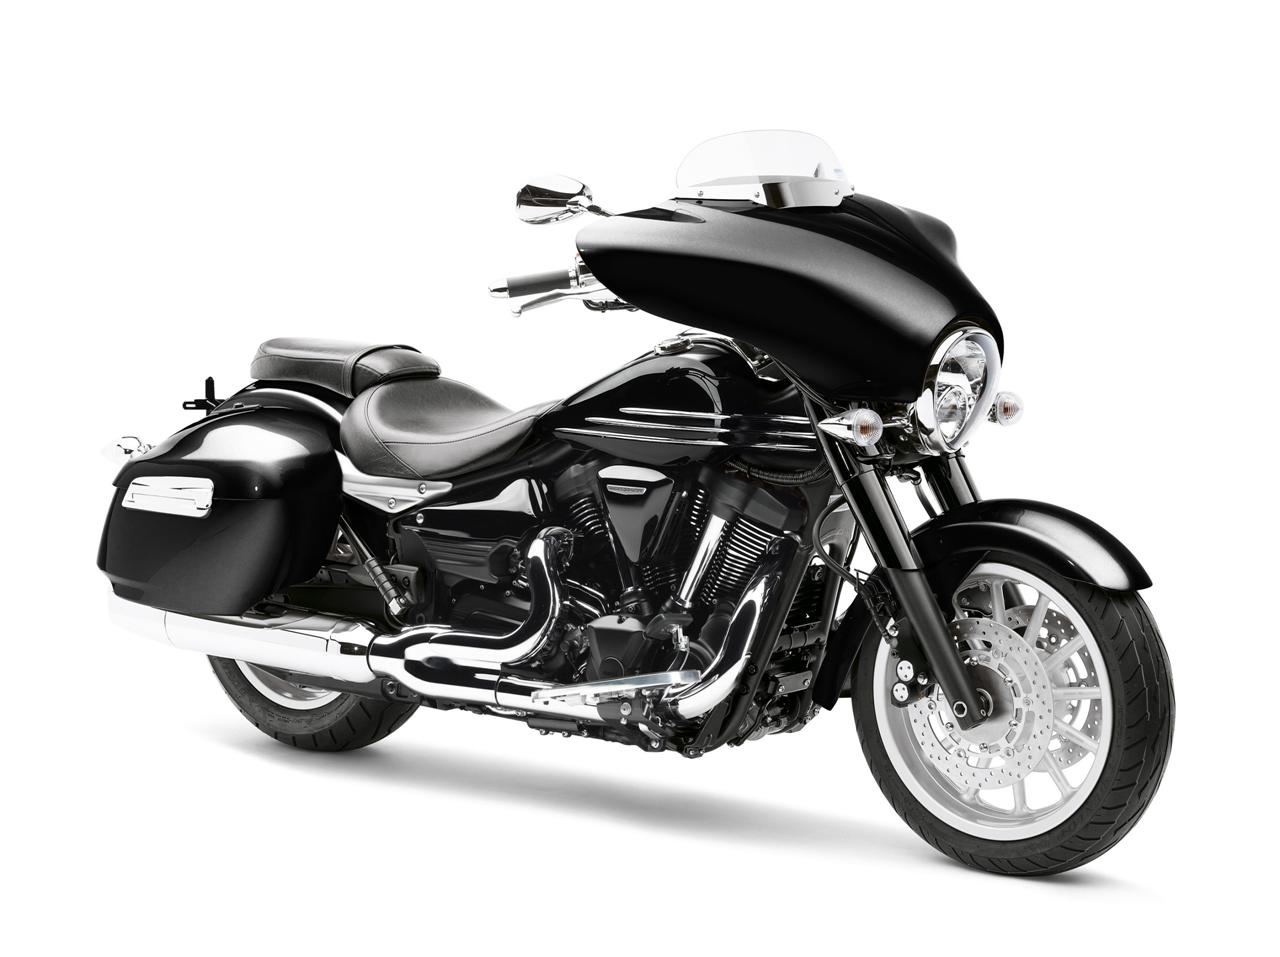 Yamaha-Midnight-Star-XVS-1900-CFD